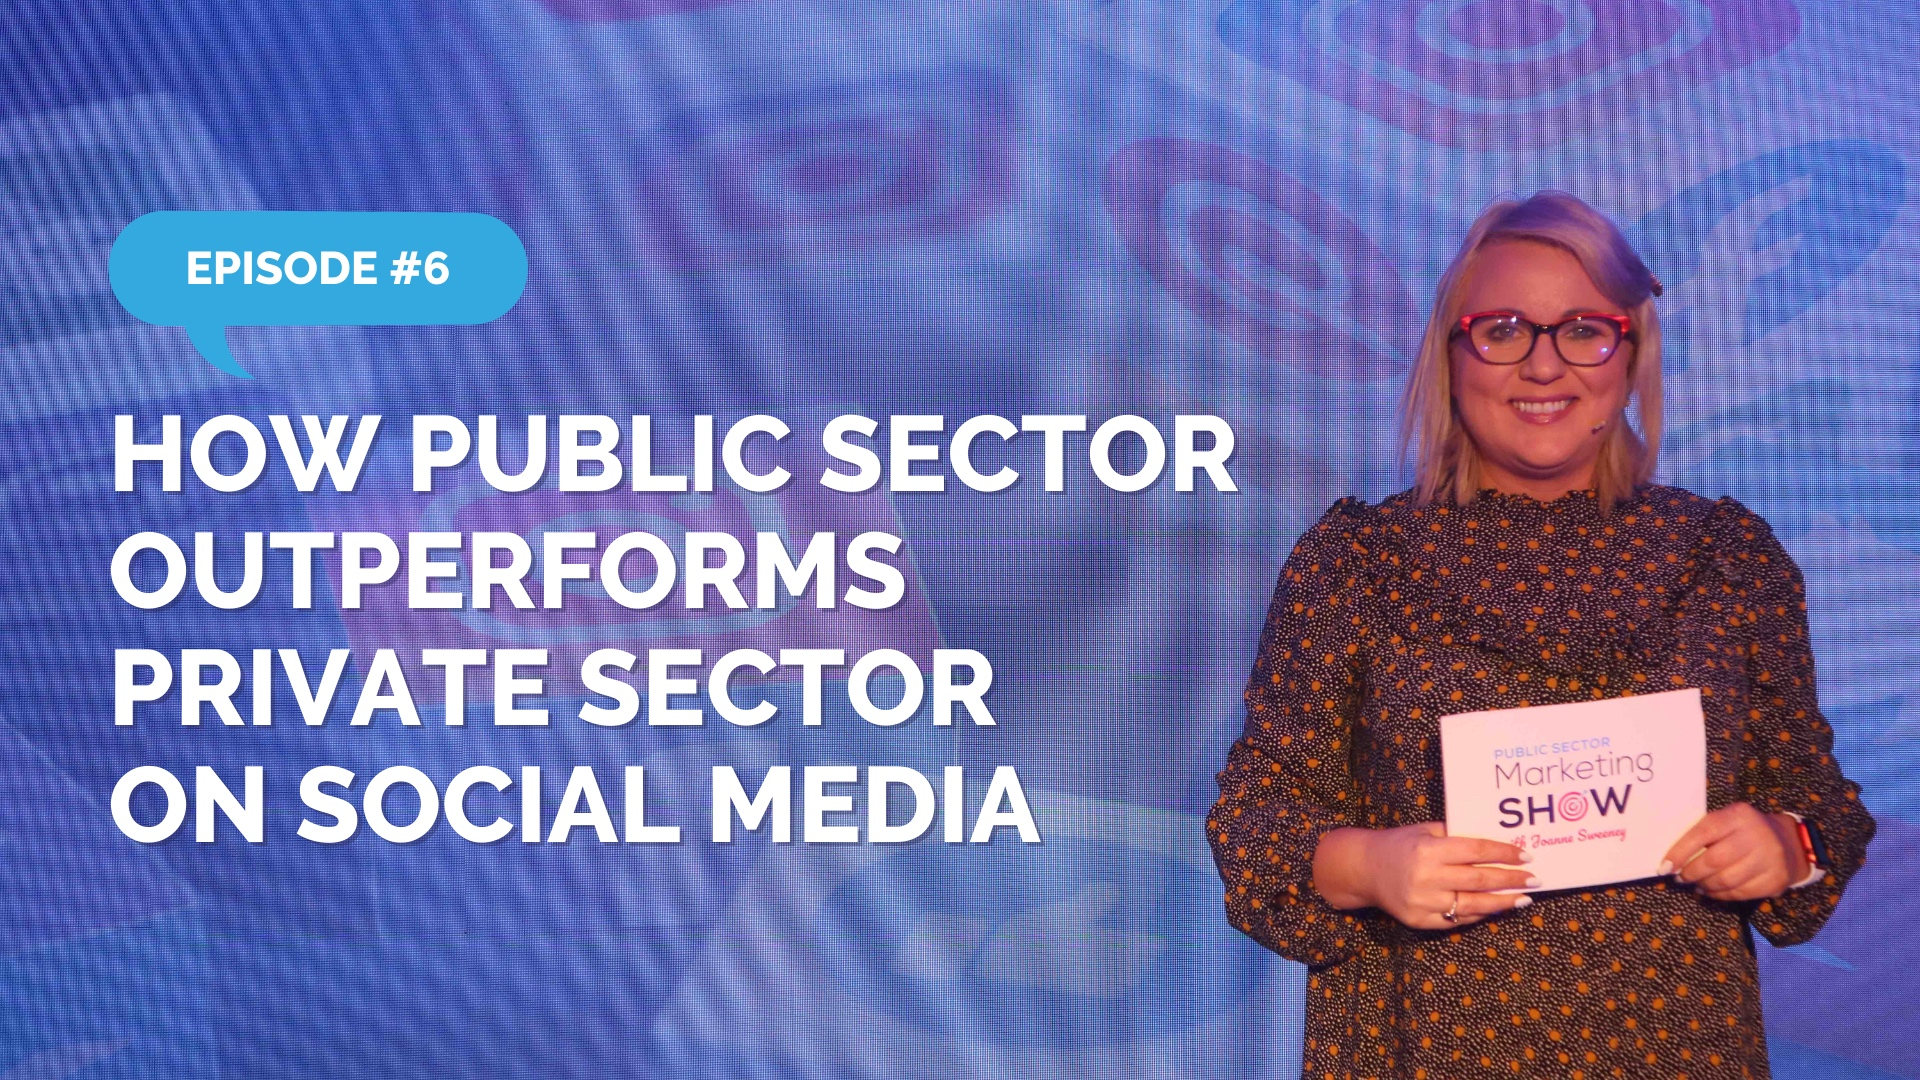 Episode 6 - How Public Sector Outperforms Private Sector on Social Media